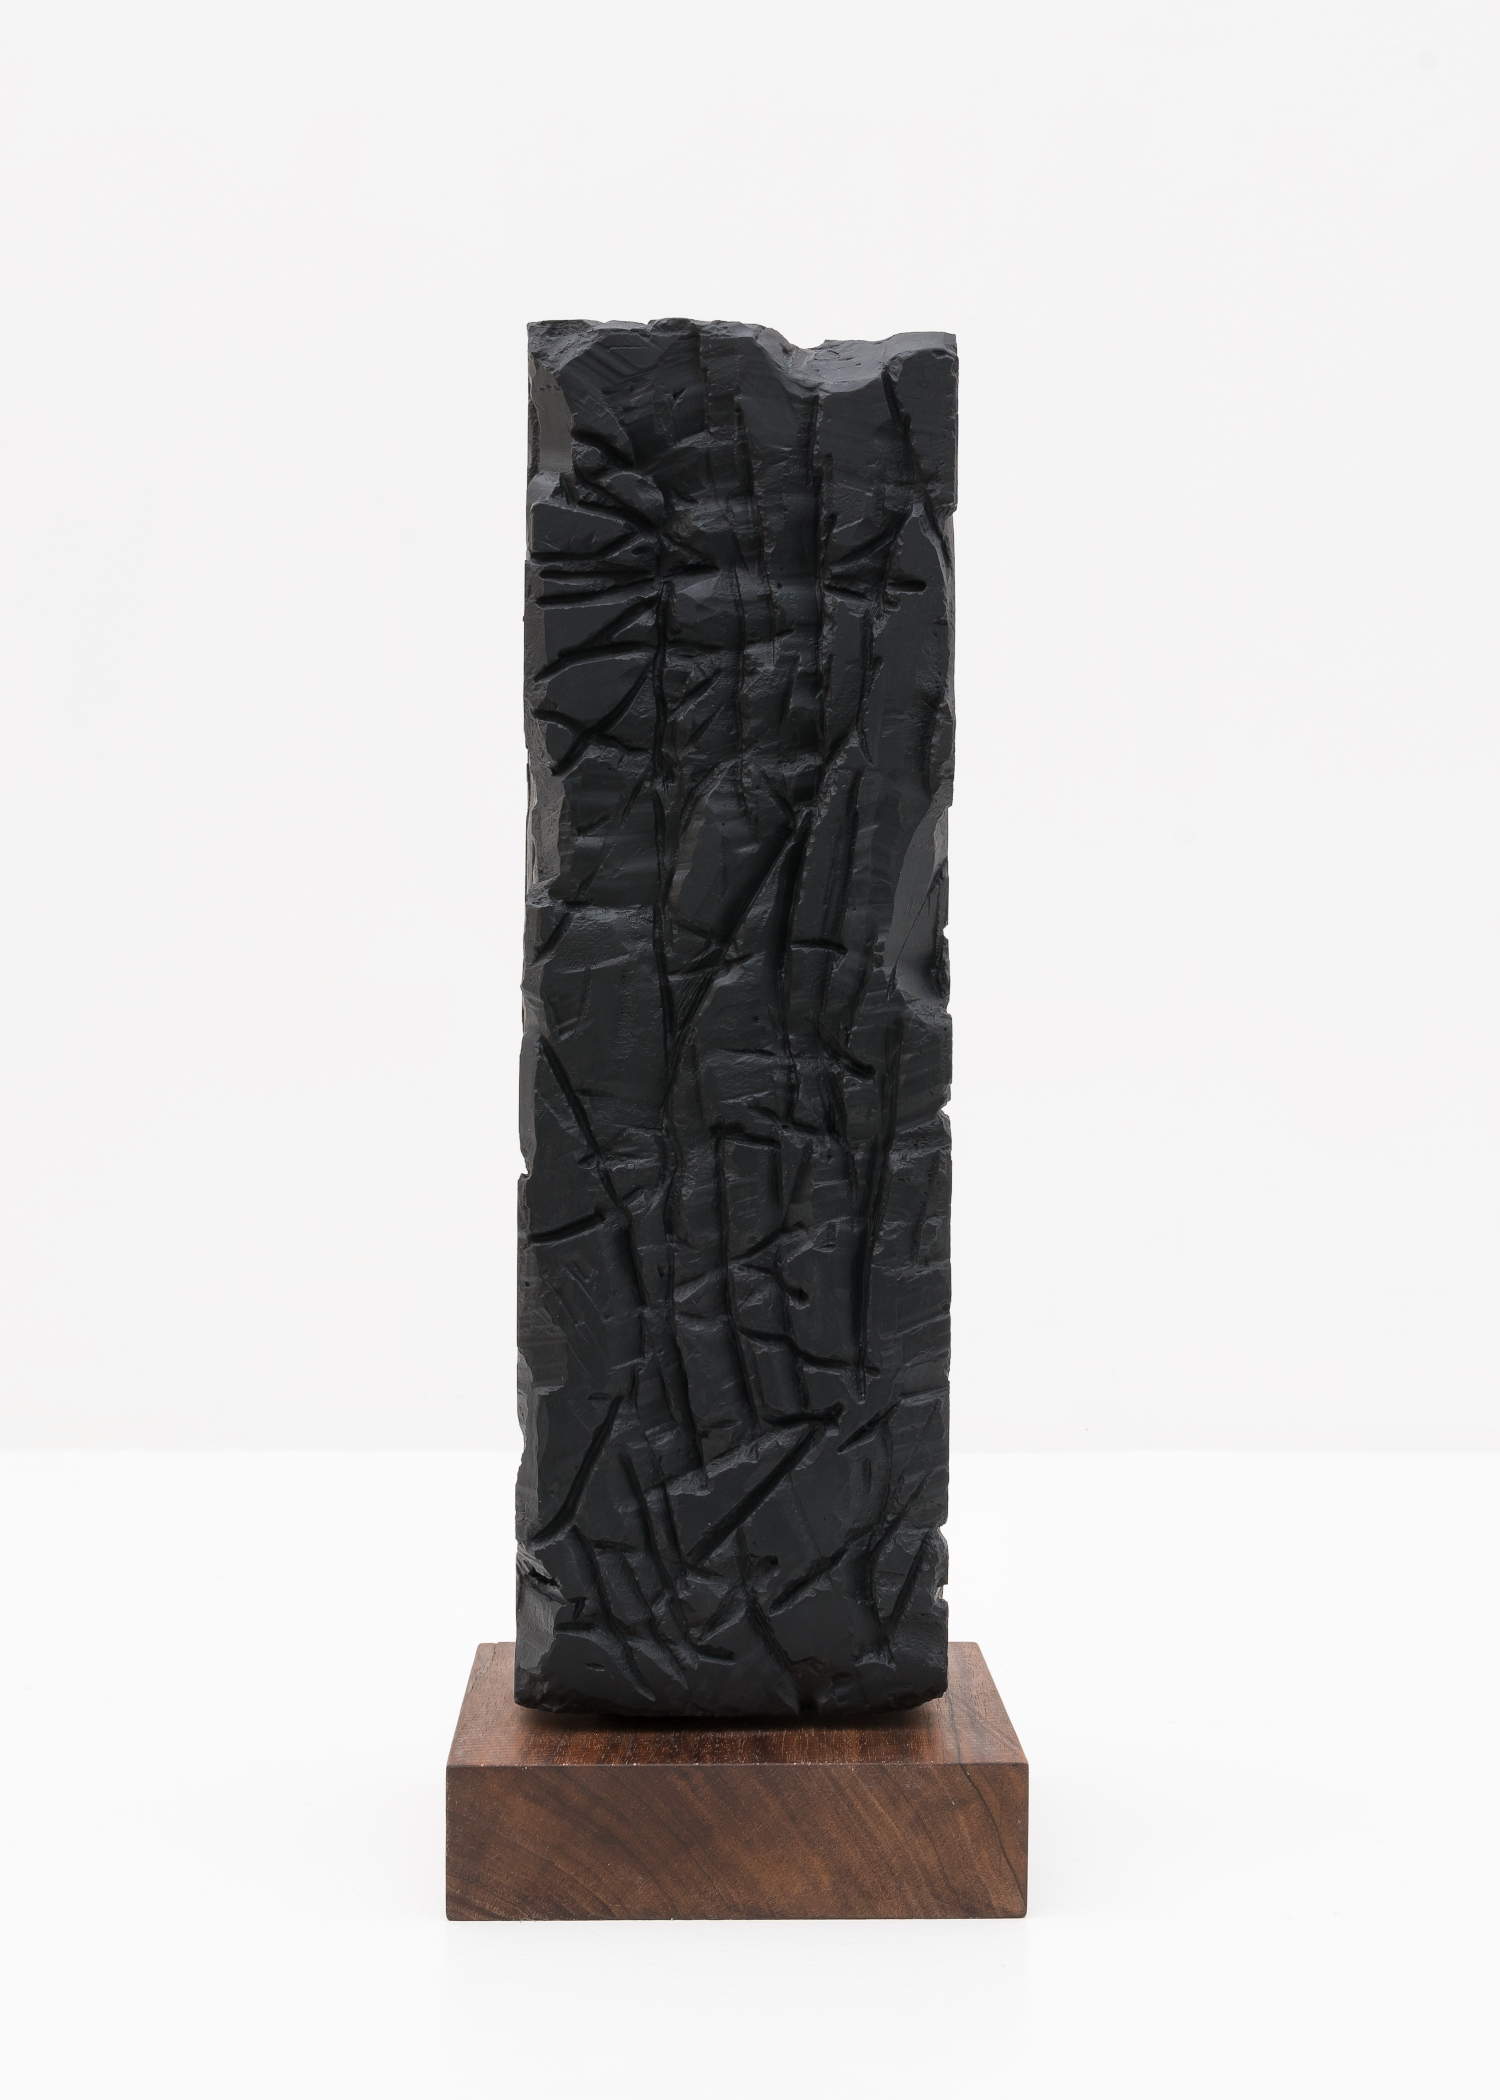 Anthony Pearson  Untitled (Freestanding Sculpture)  2015 Medium coated pigmented white art plaster with oiled walnut base 16 ¼h x 3 ½w x 3 ½d in AP373